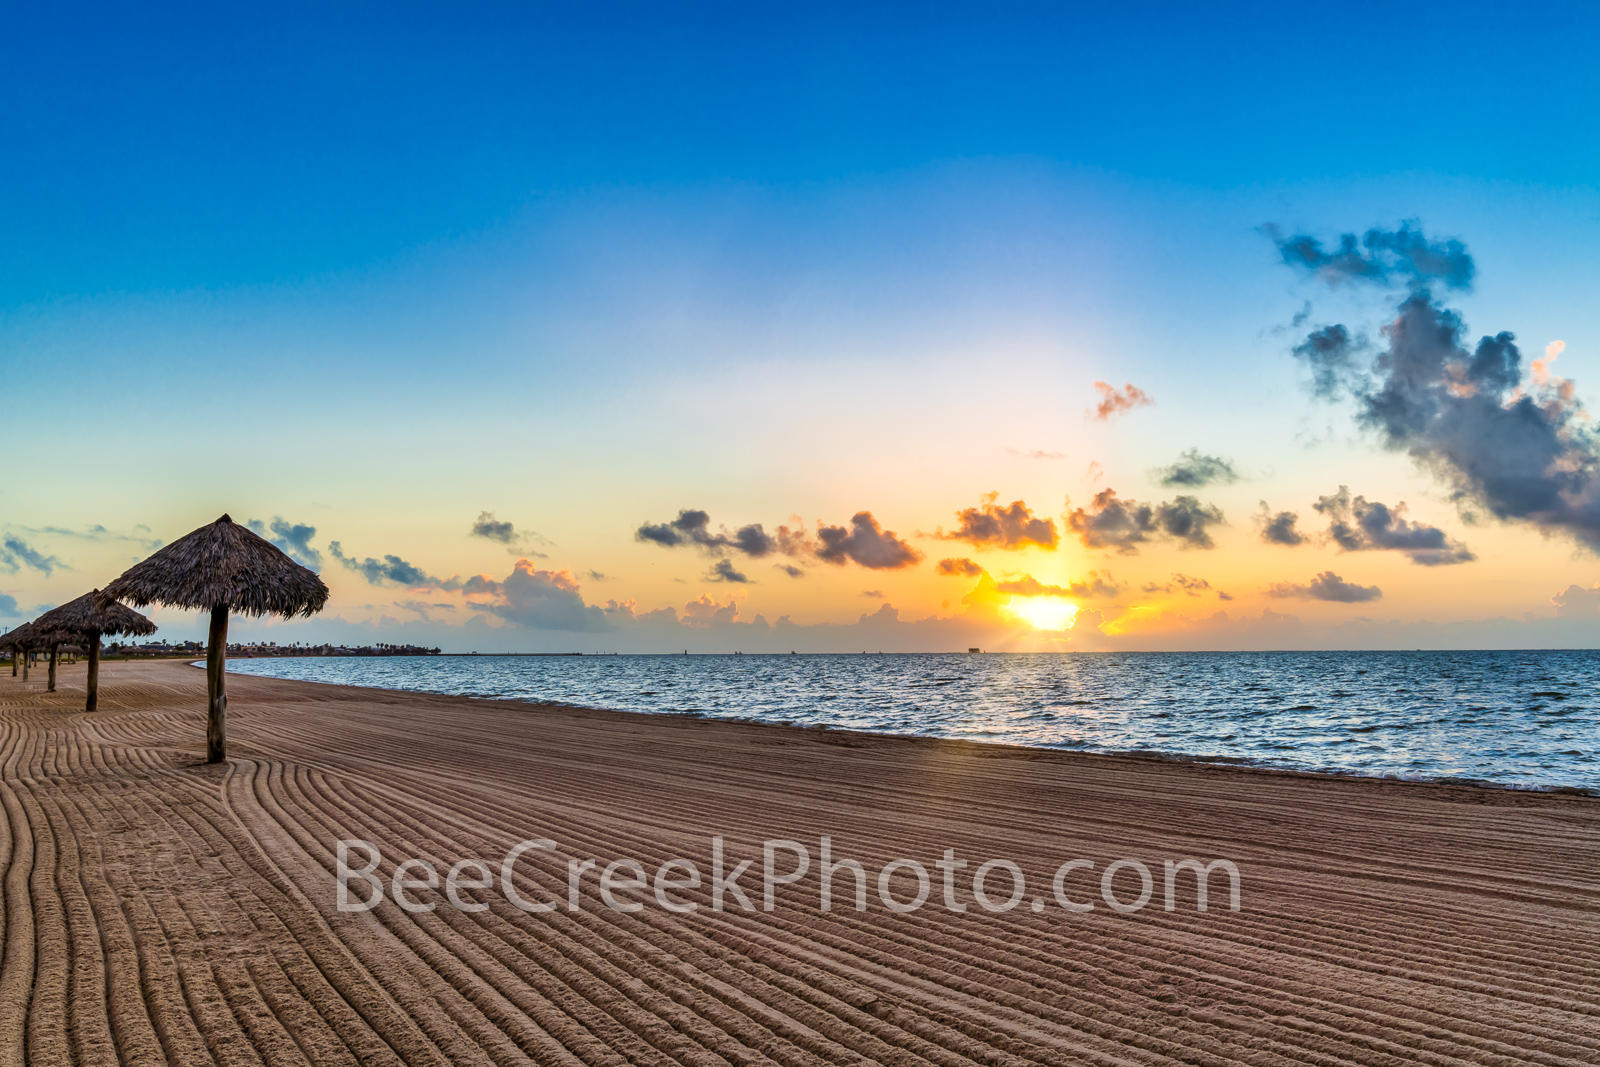 rockport, texas, beach, sunrise, glow, sandy beach, beach, clouds, orange, pink, rockport texas, ocean, gulf of mexico, gulf, texas coast, texas gulf, water, seascape, waterscape, coastal, coast, sea,, photo